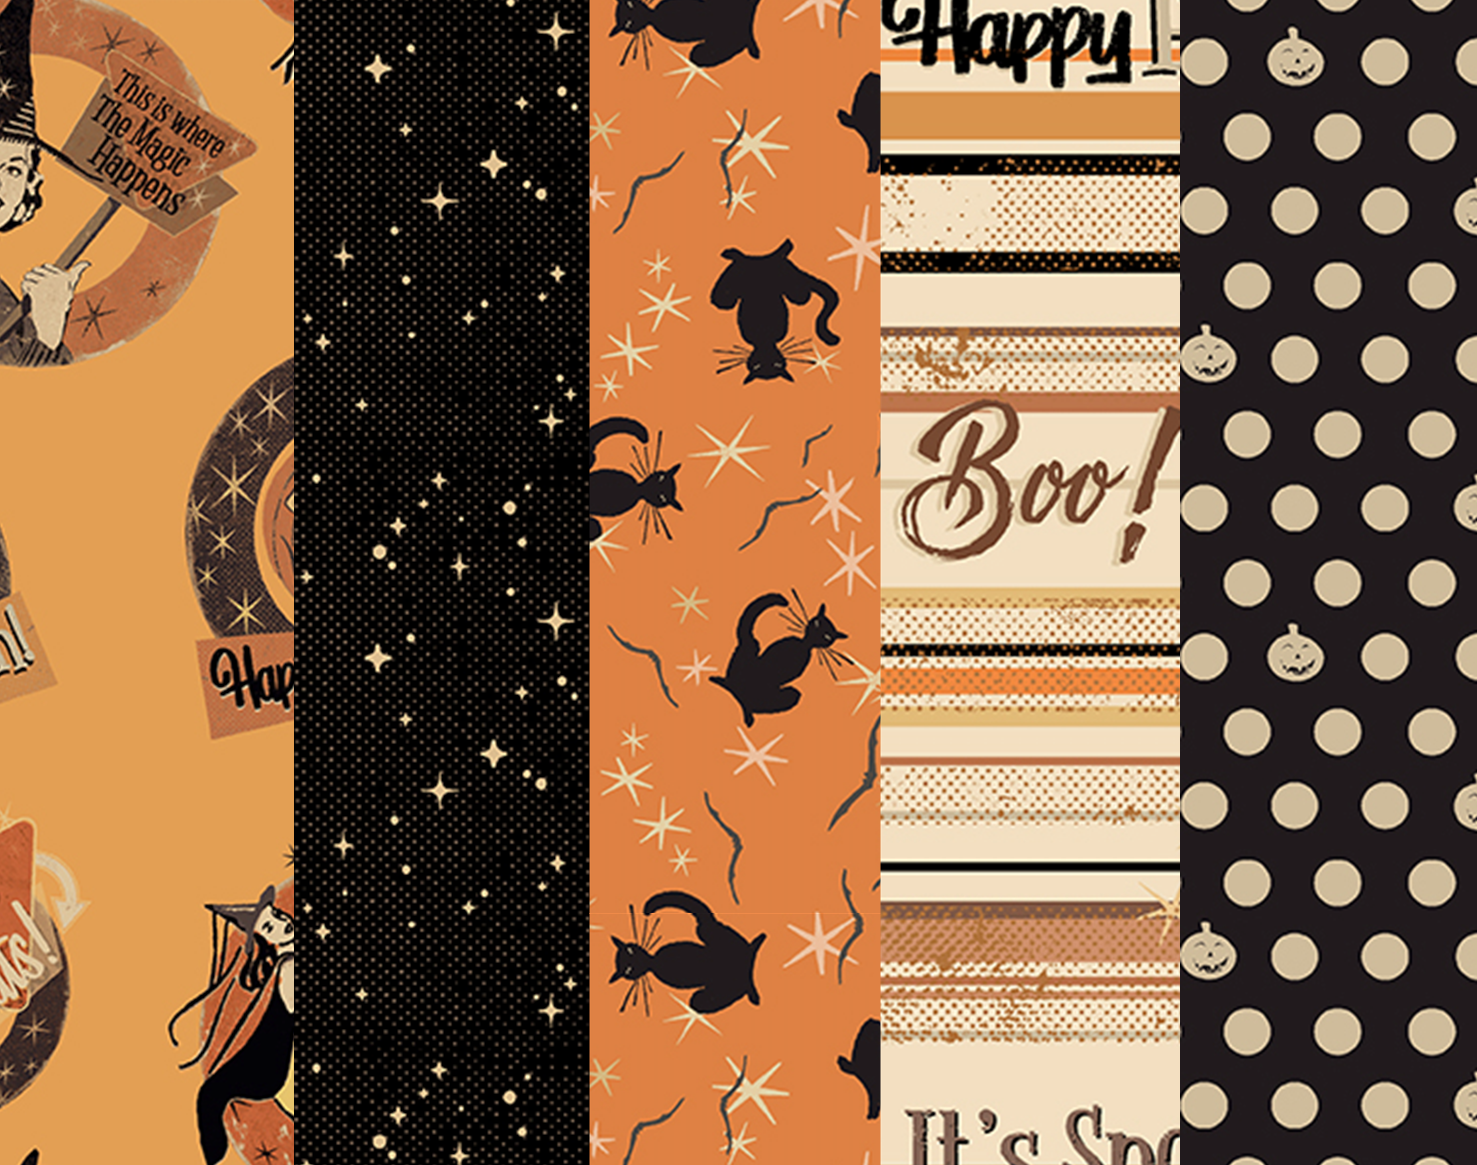 Retro Halloween - 5 one yard cuts - Free A-OK Pattern with Purchase